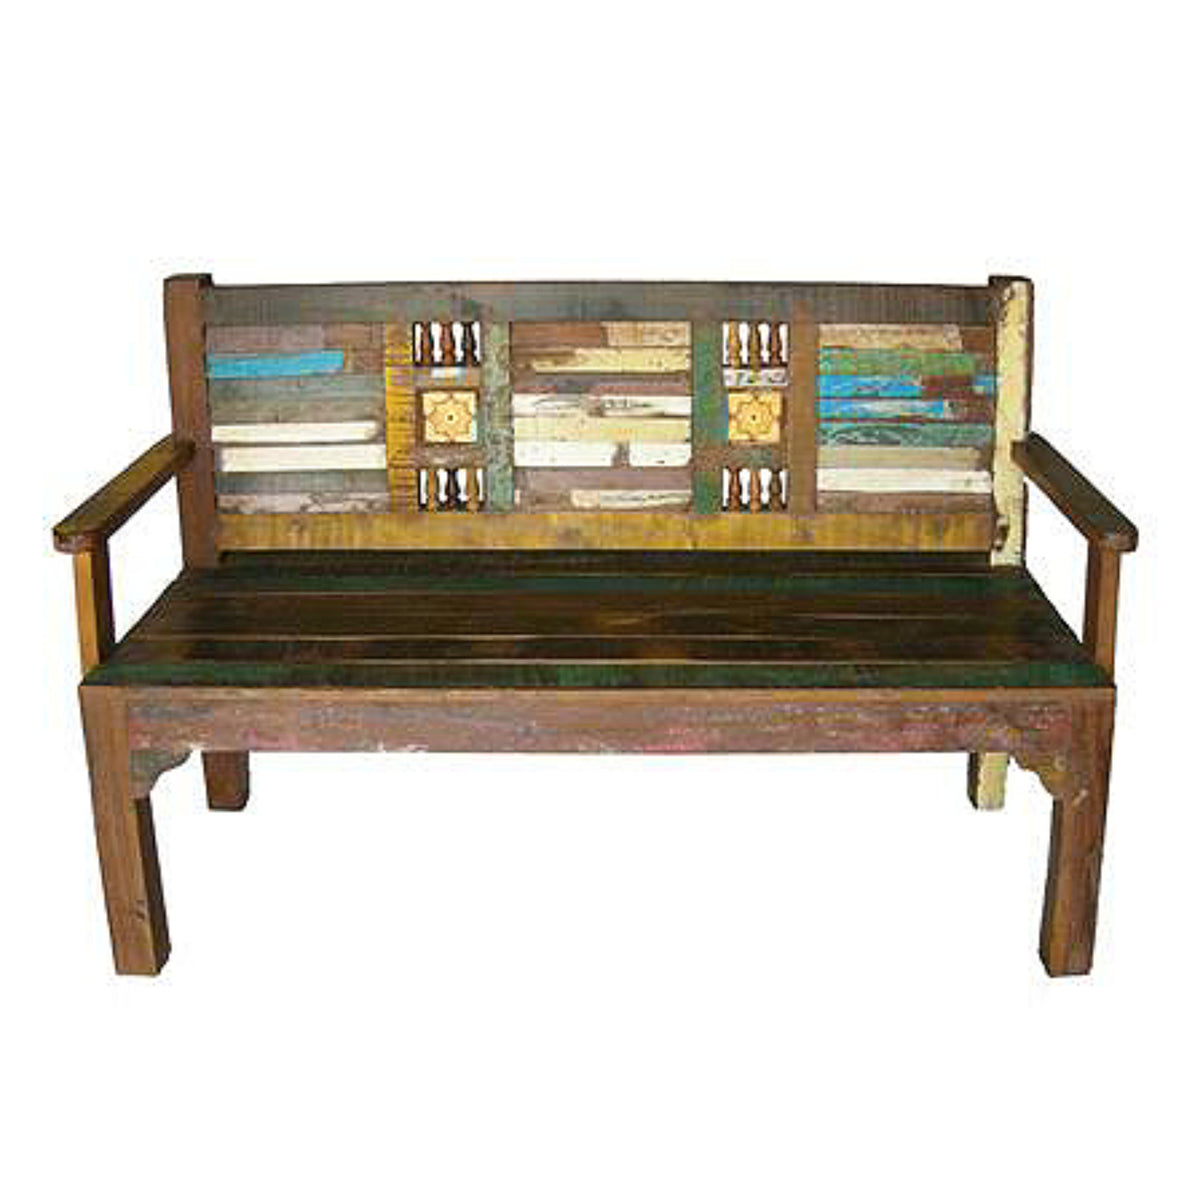 Upcycled Wooden Bench